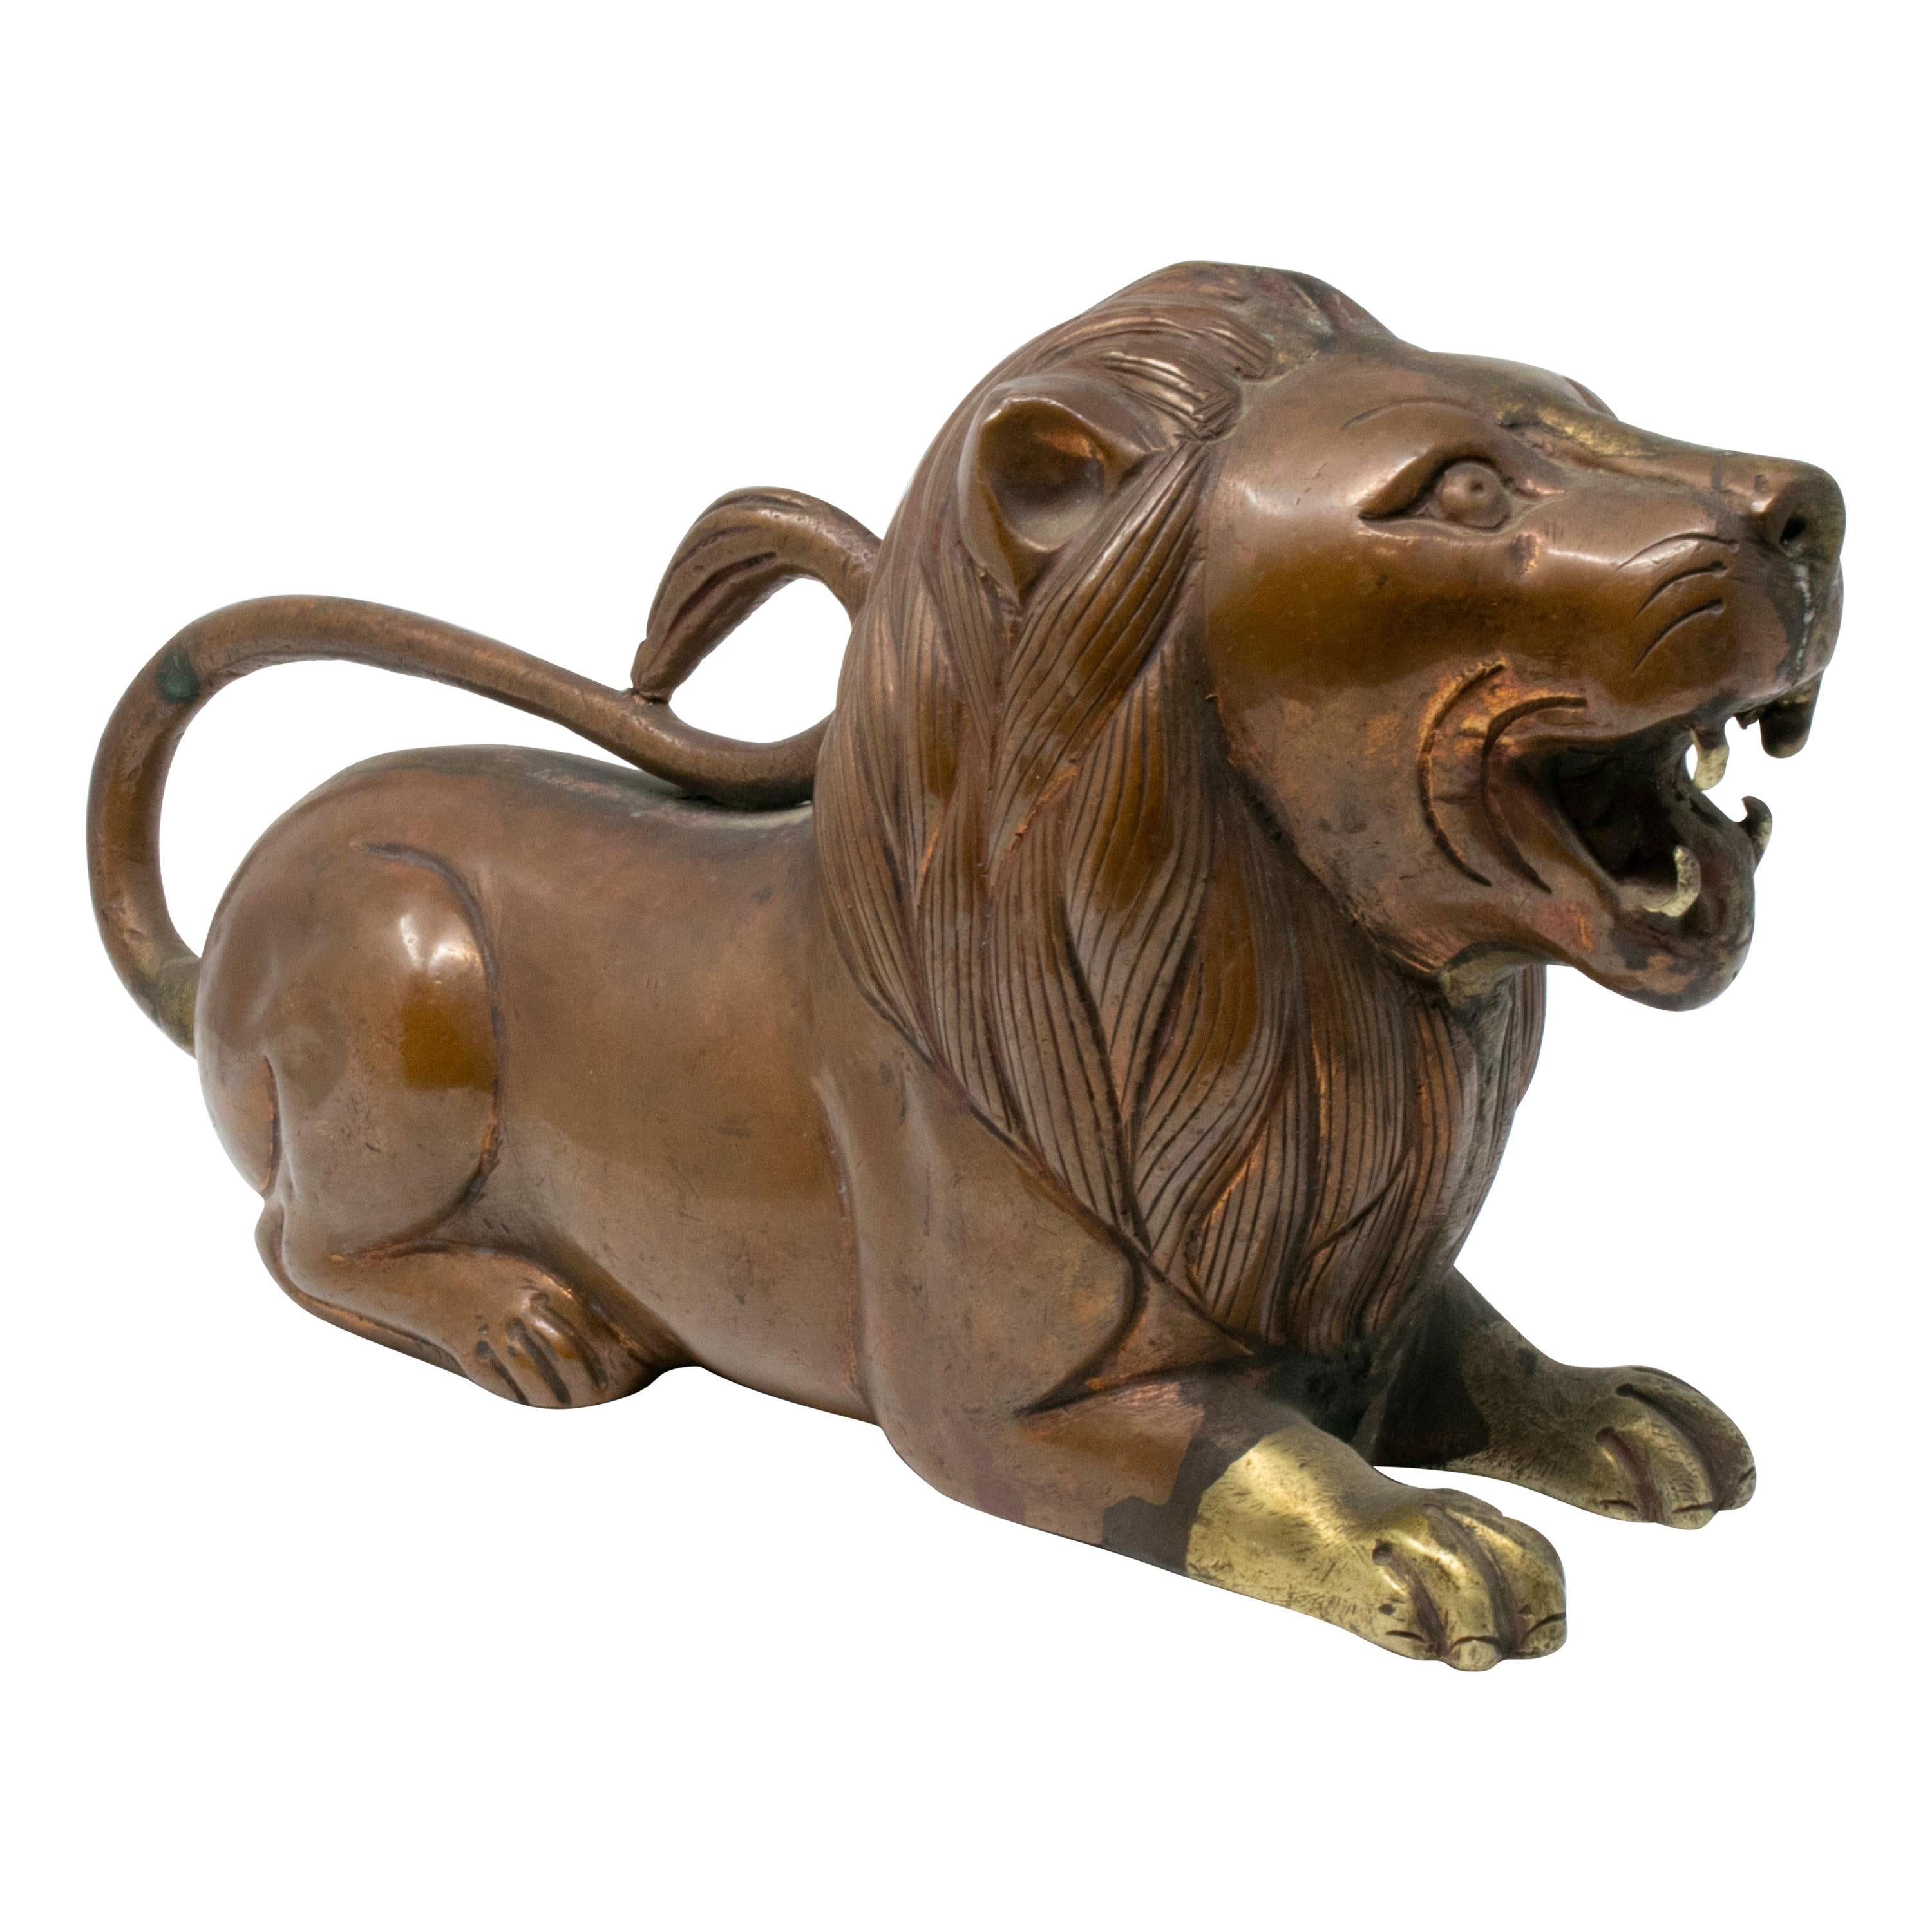 19th Century Indian Bronze Sculpture of a Lying Lion